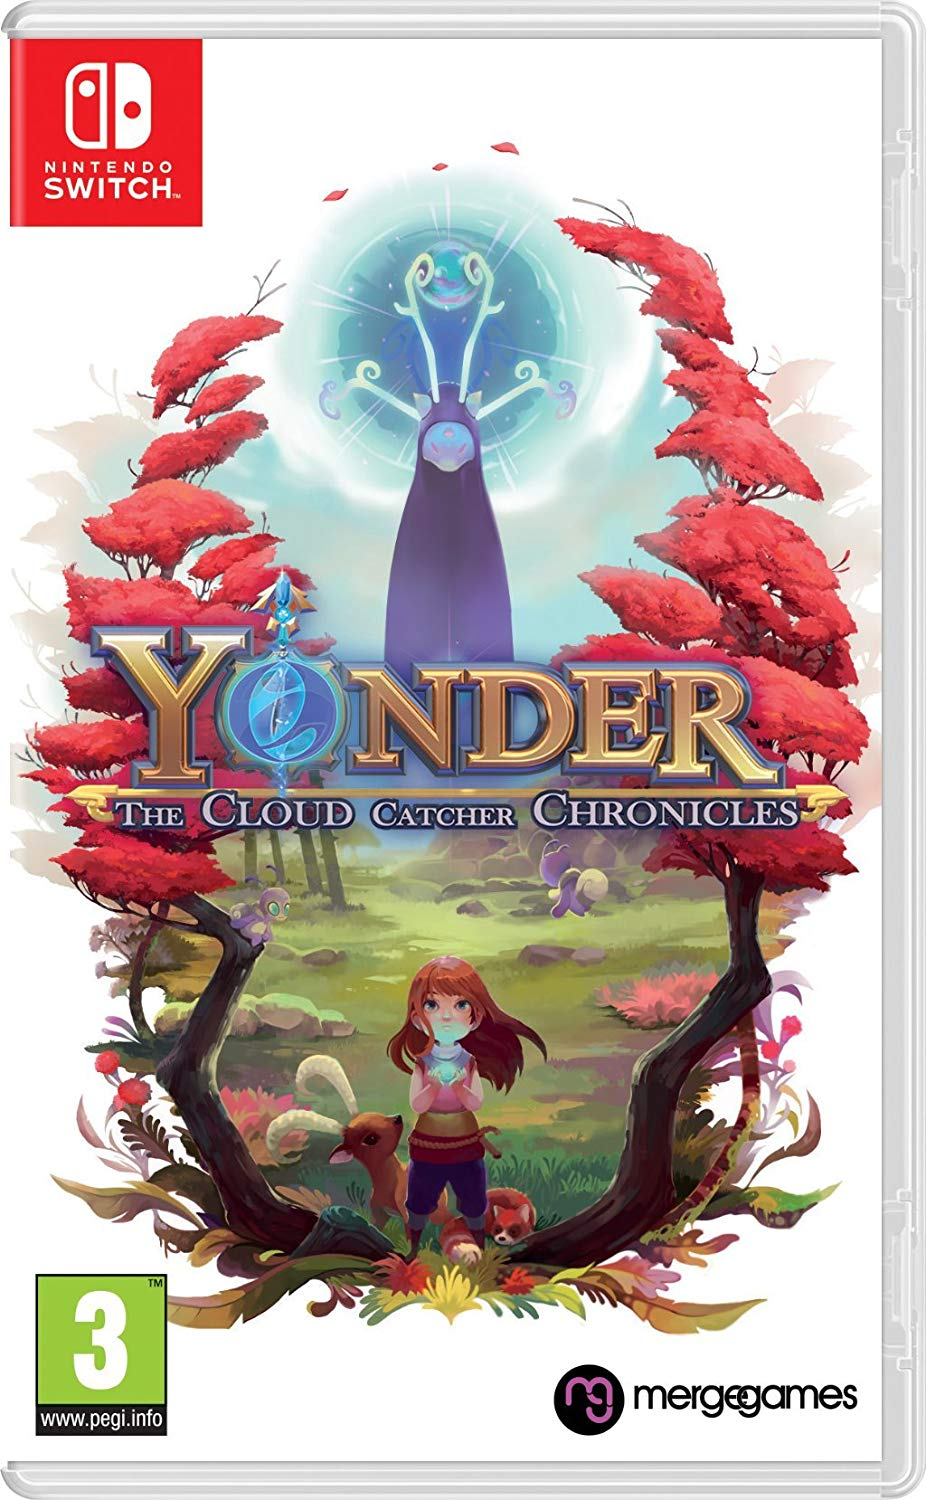 Yonder: The Cloud Catcher Chronicles Nintendo Switch